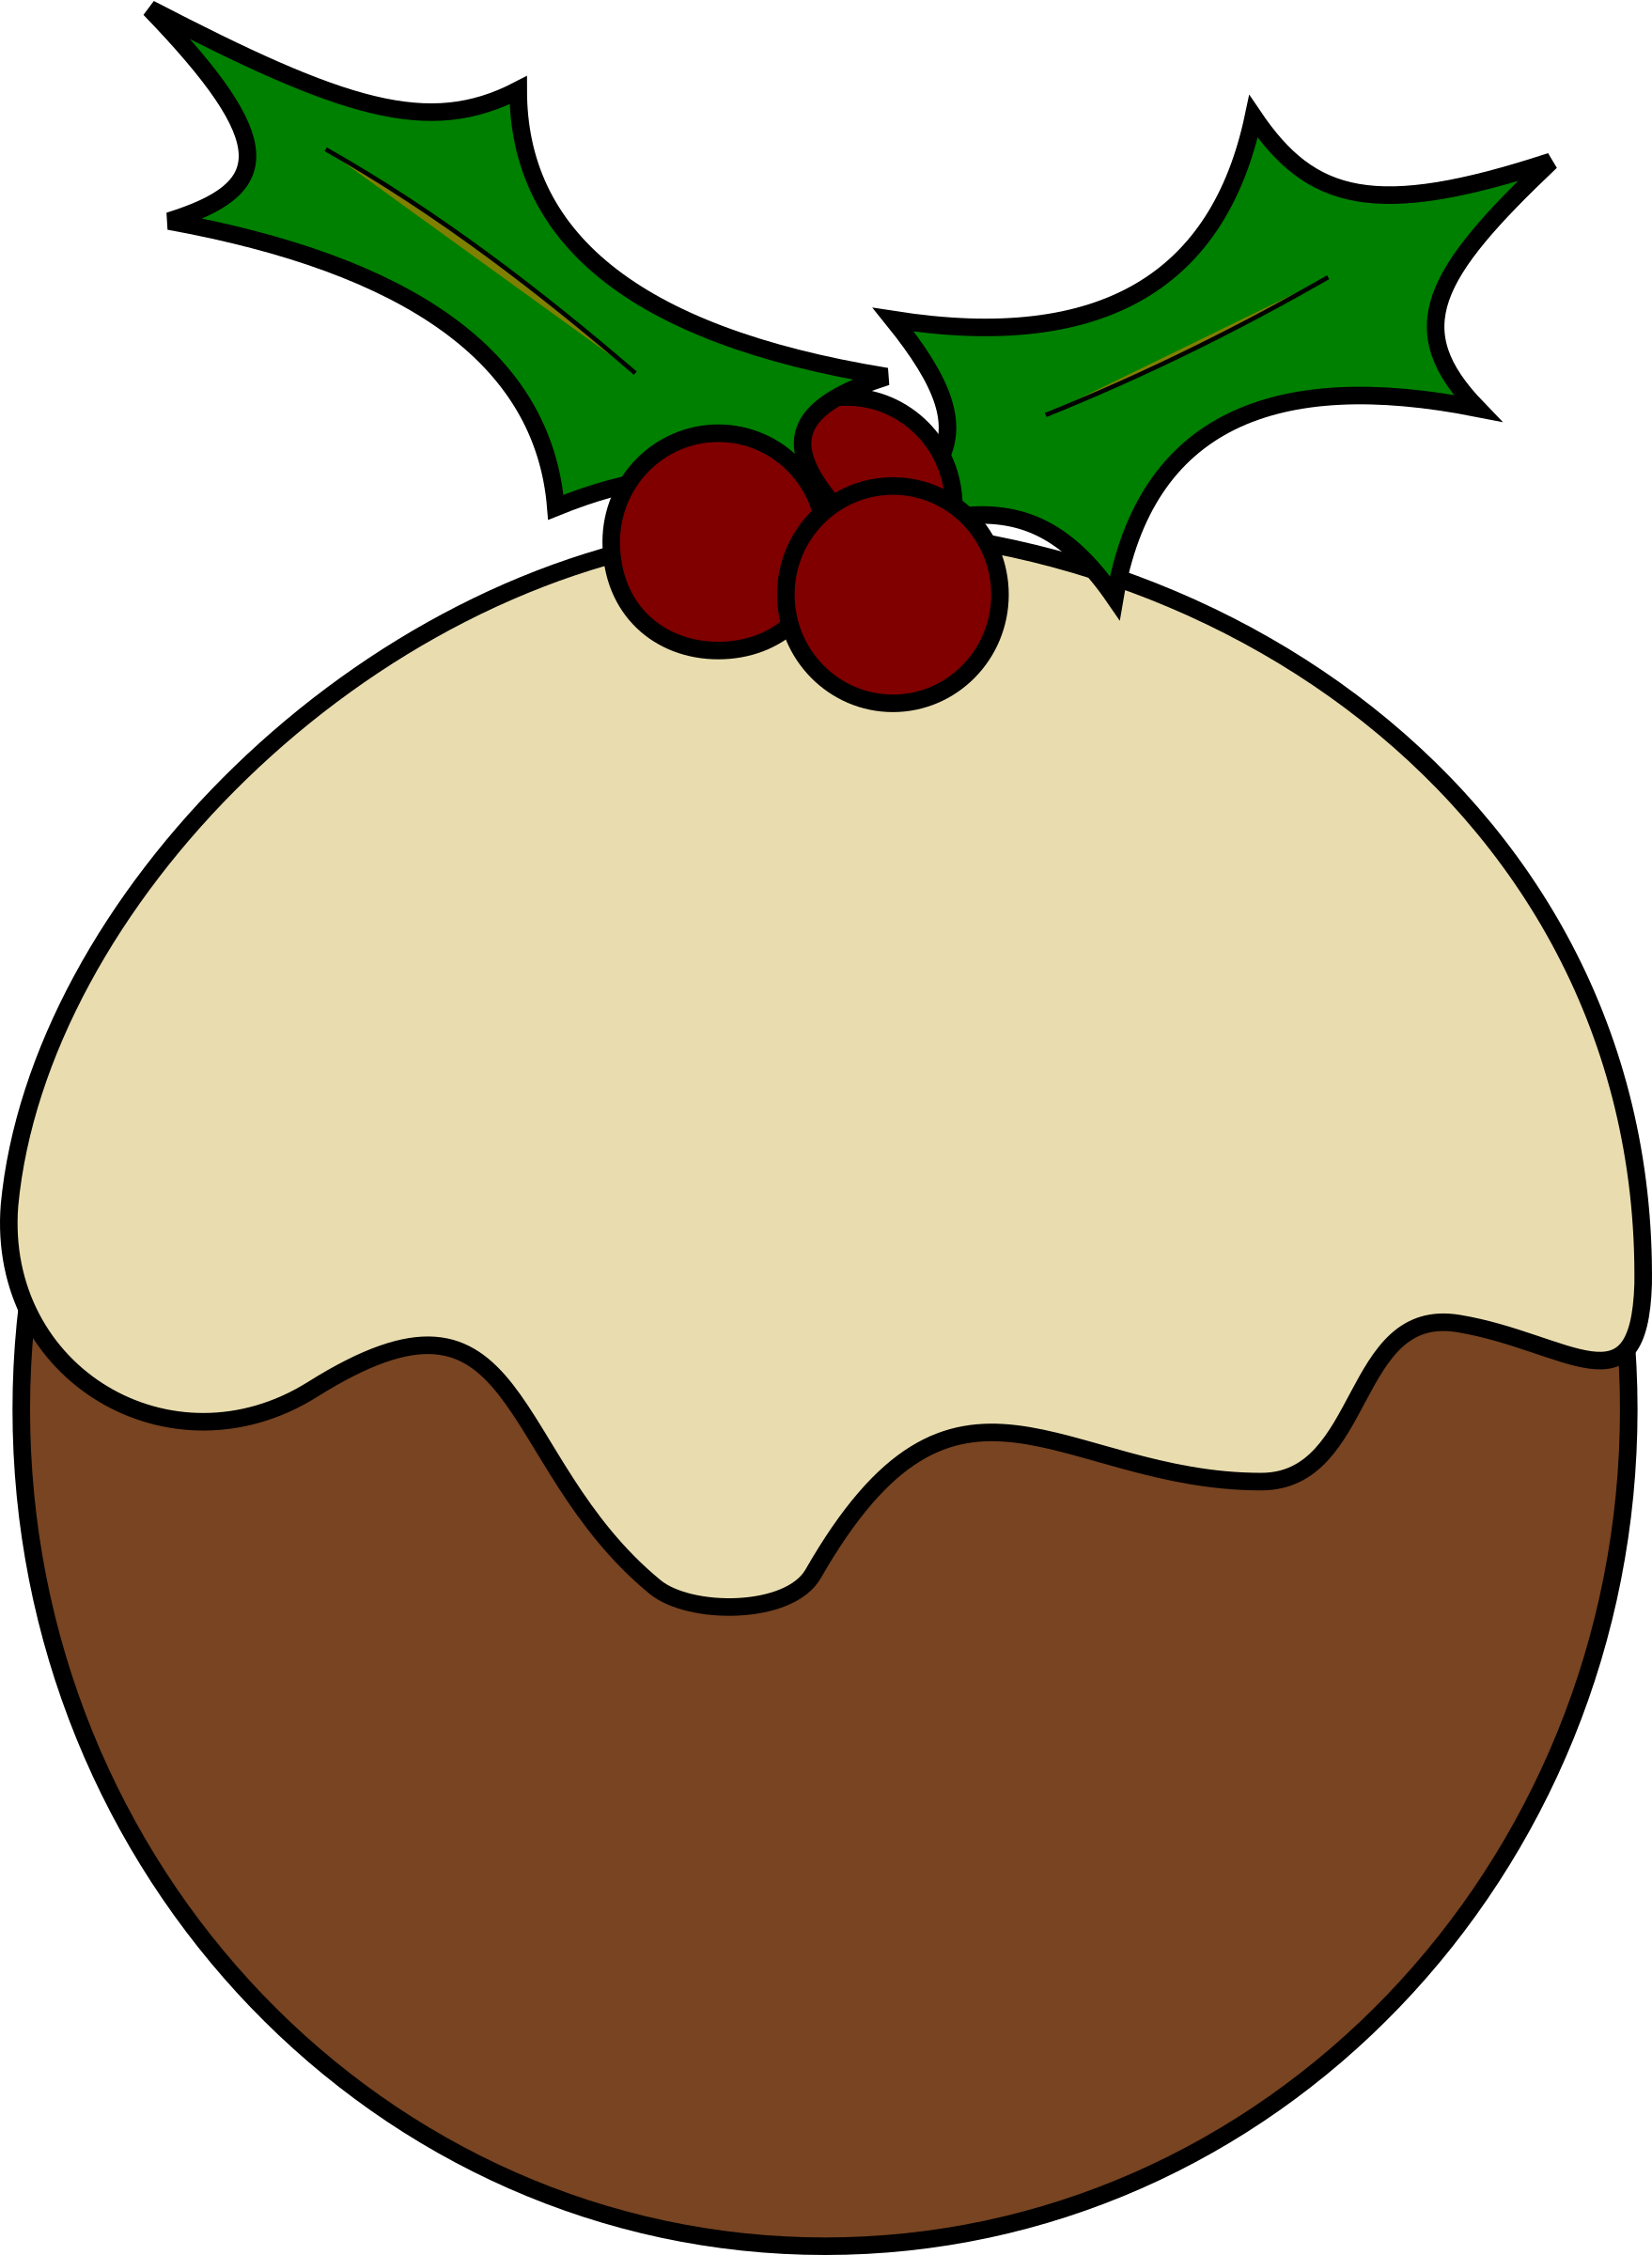 Holly clipart easy. Christmas pudding big image